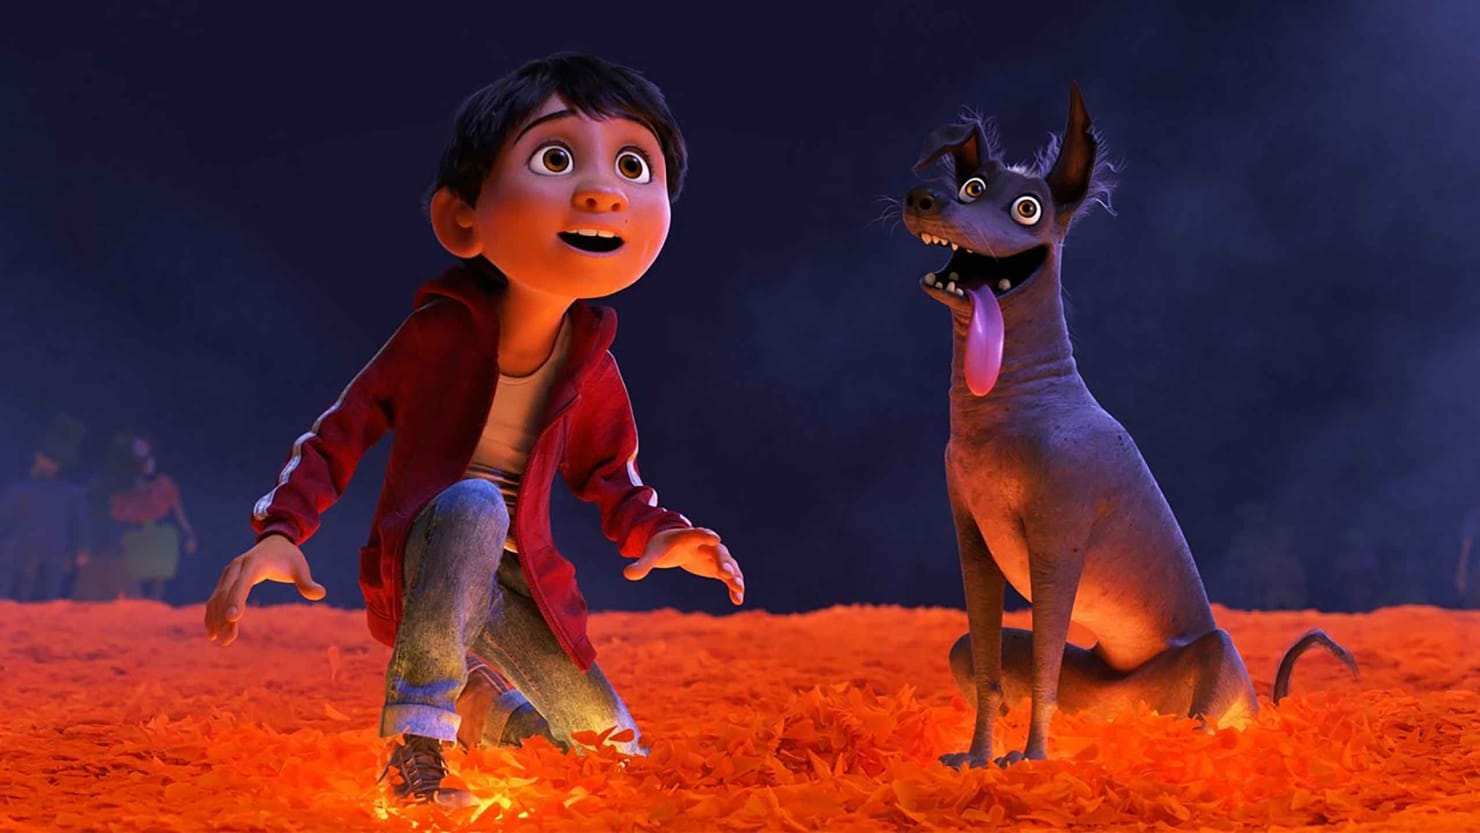 Coco Disney Pixars Darkest Most Beautiful Movie Yet